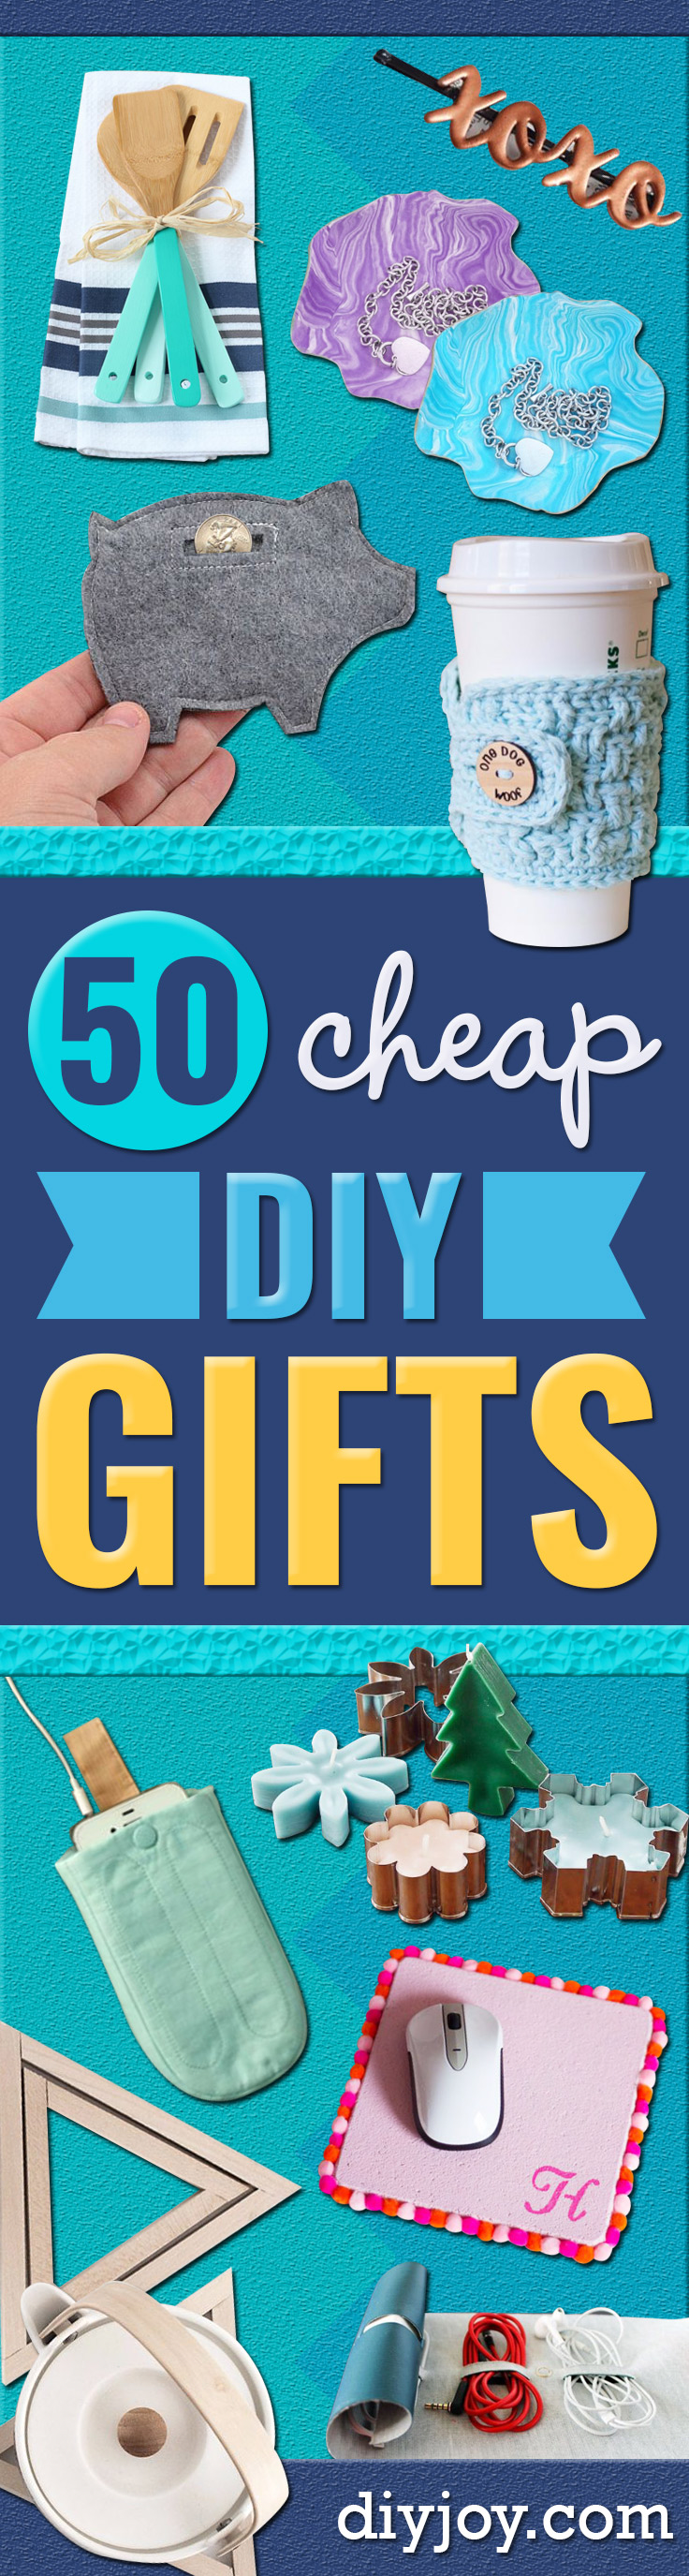 50 Cheap Diy Holiday Gifts That Only Look Expensive